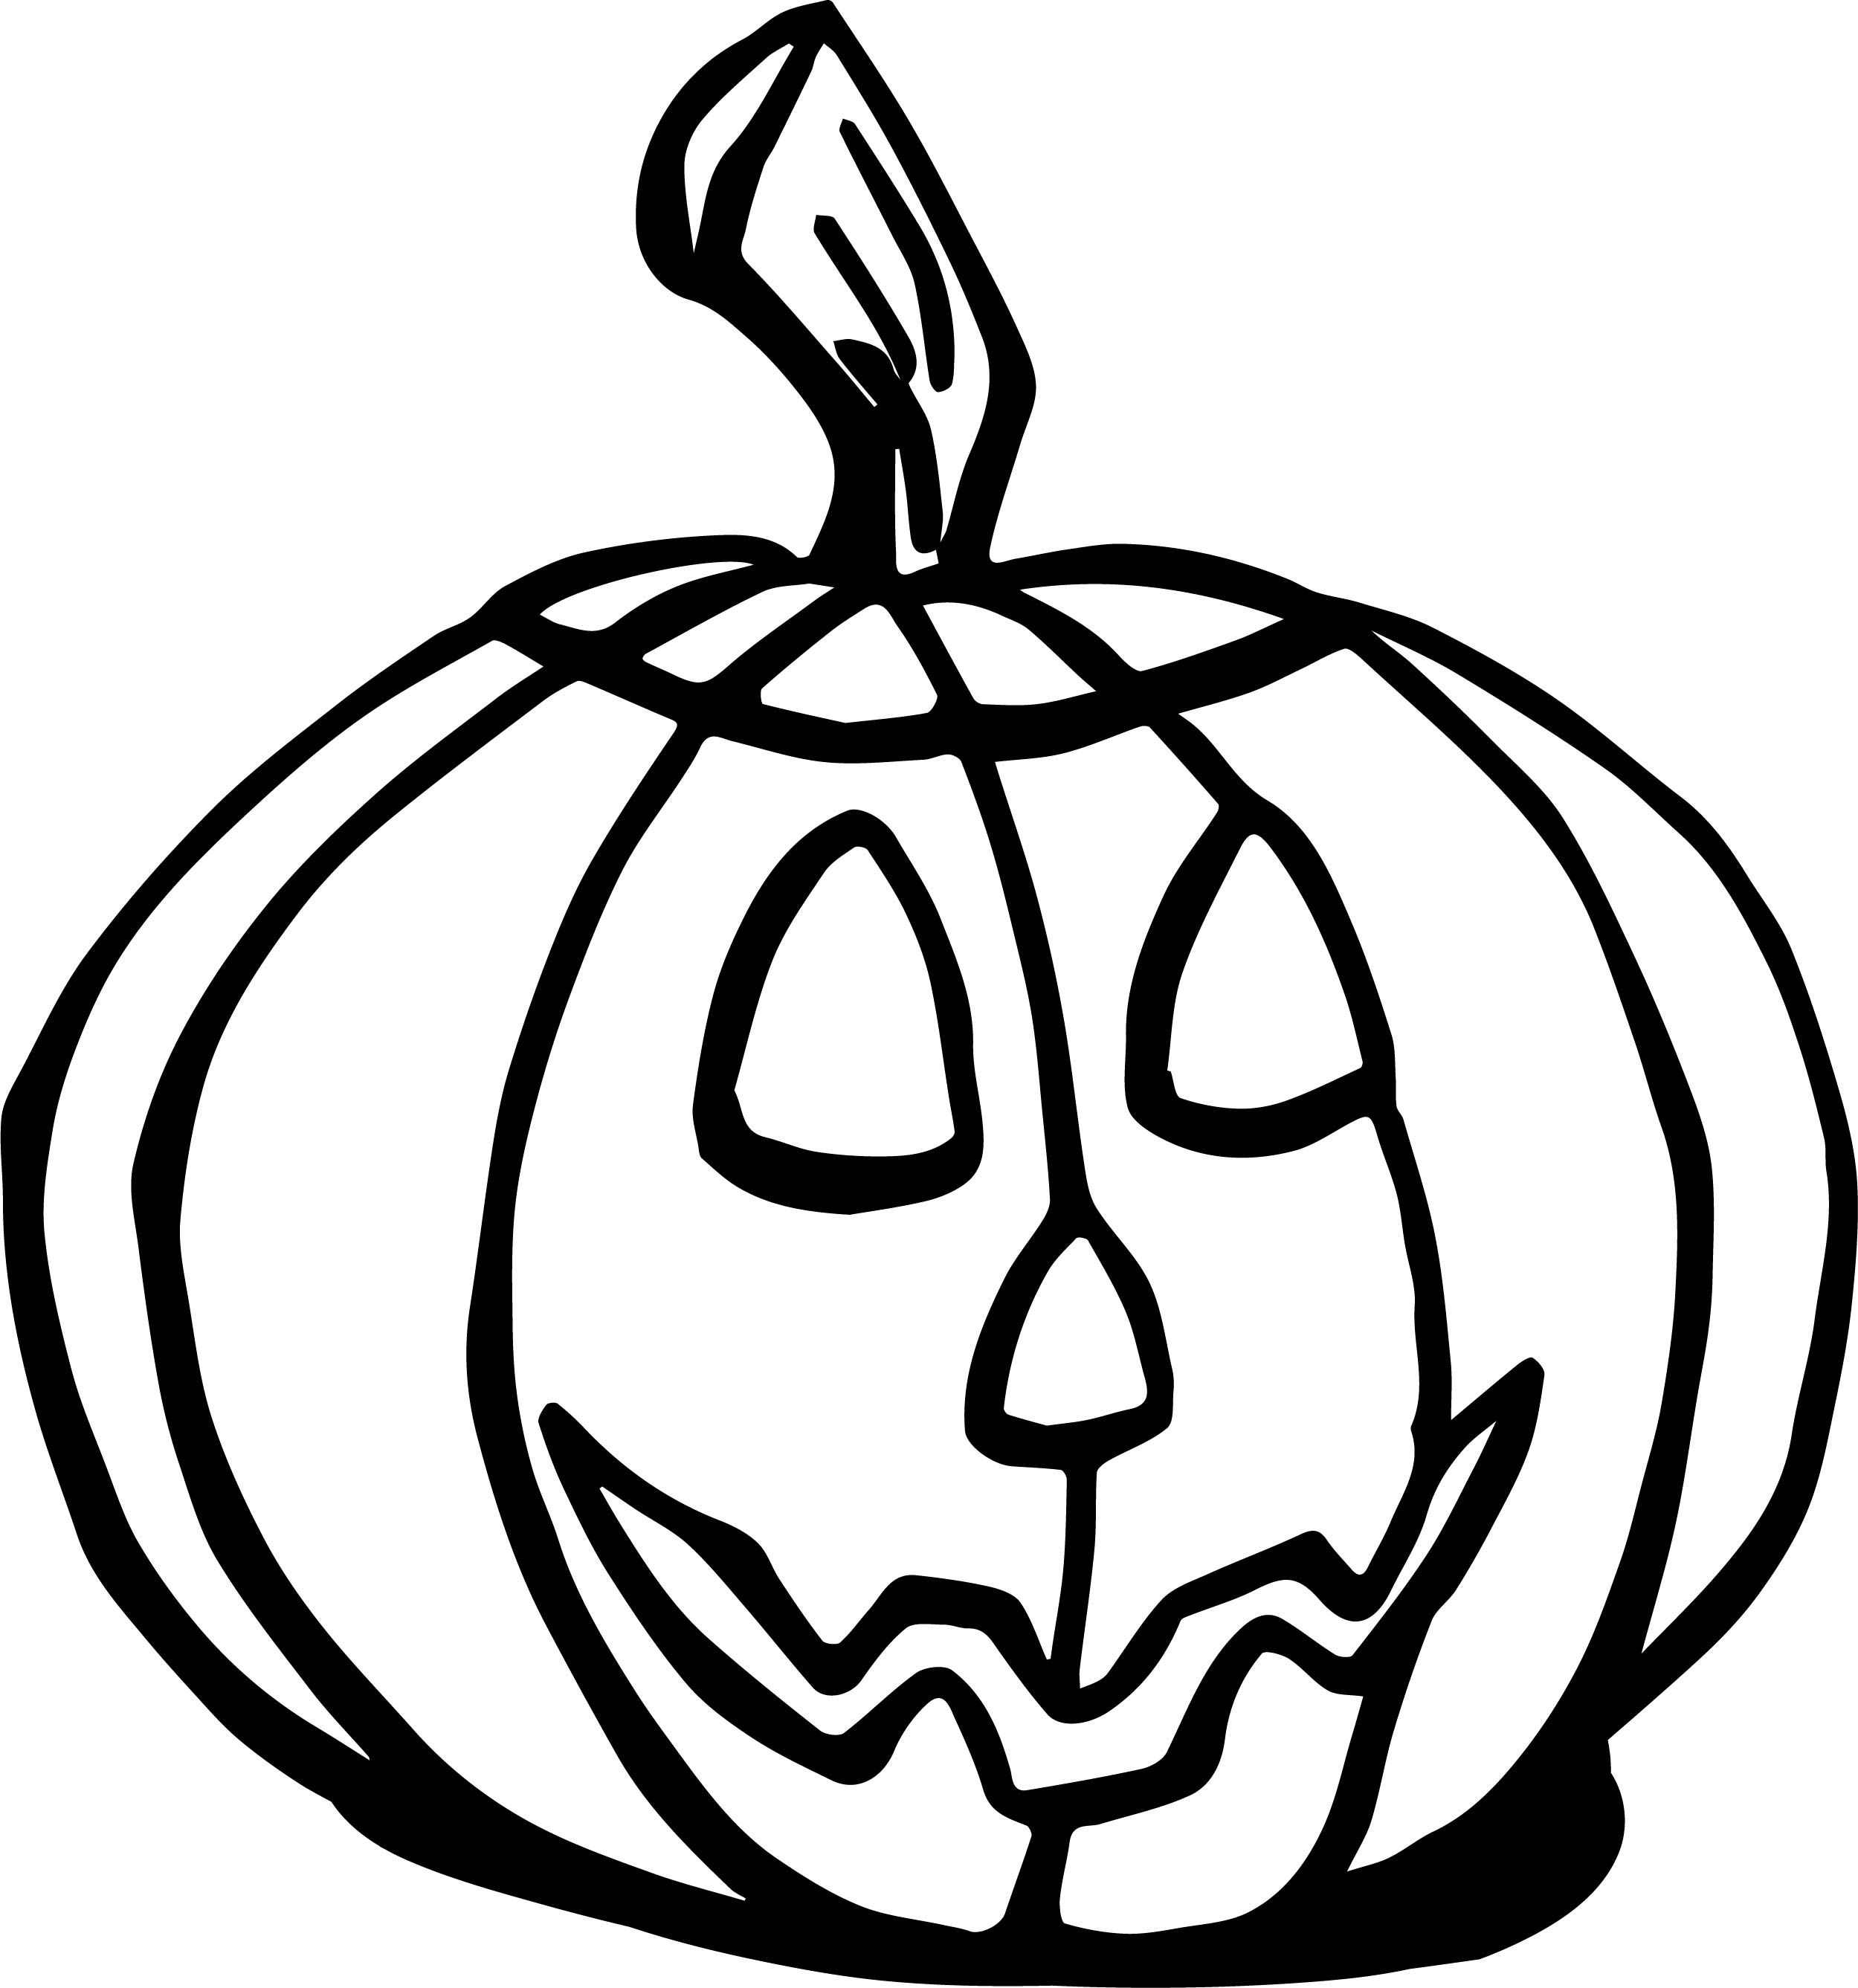 fall pumpkin coloring pages halloween fall pumpkin coloring page pumpkin coloring pumpkin pages coloring fall